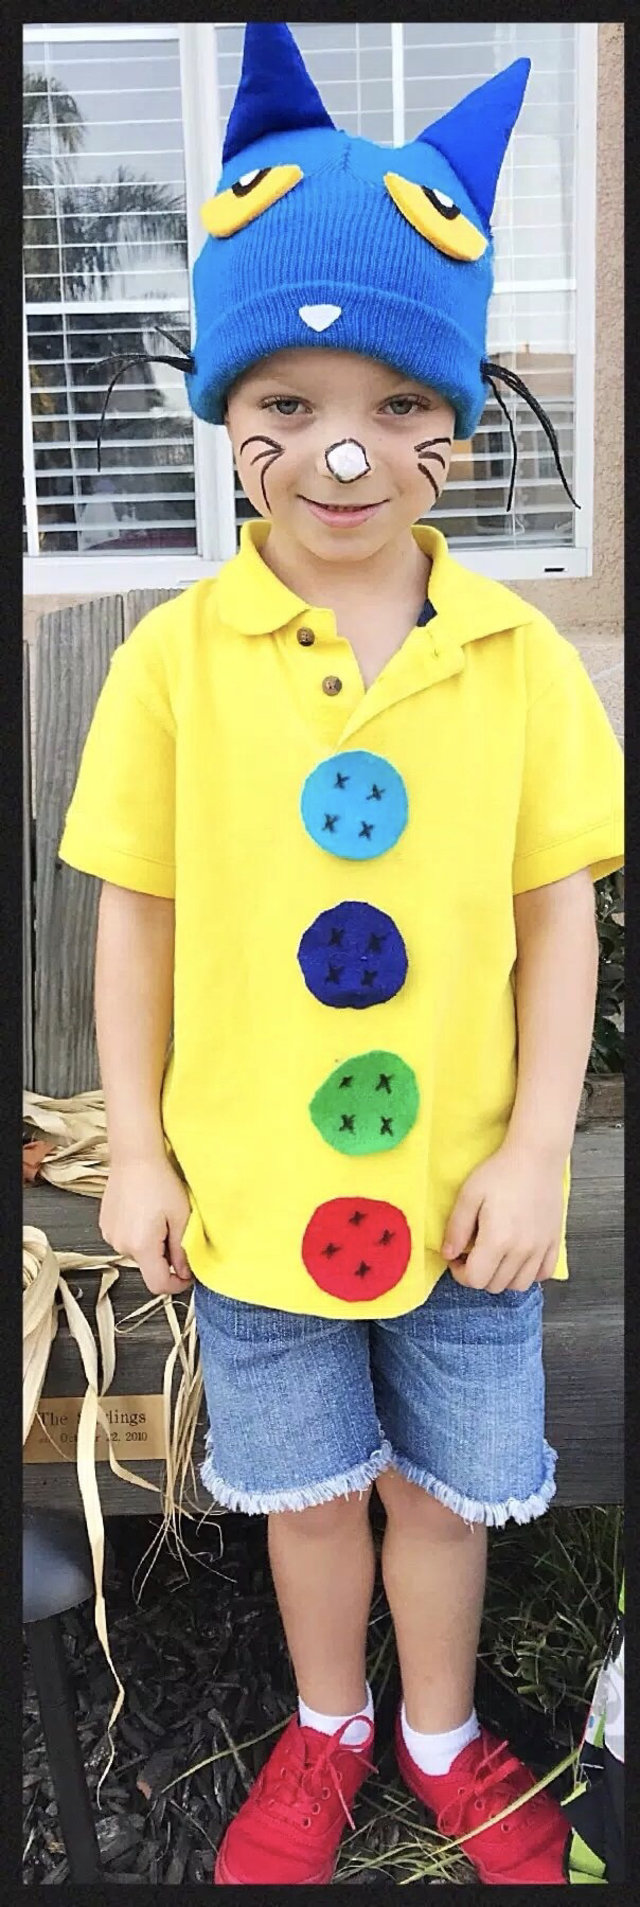 Pete the Cat shirt for book character day,Pete the Cat Groovy Buttons shirt,Pete